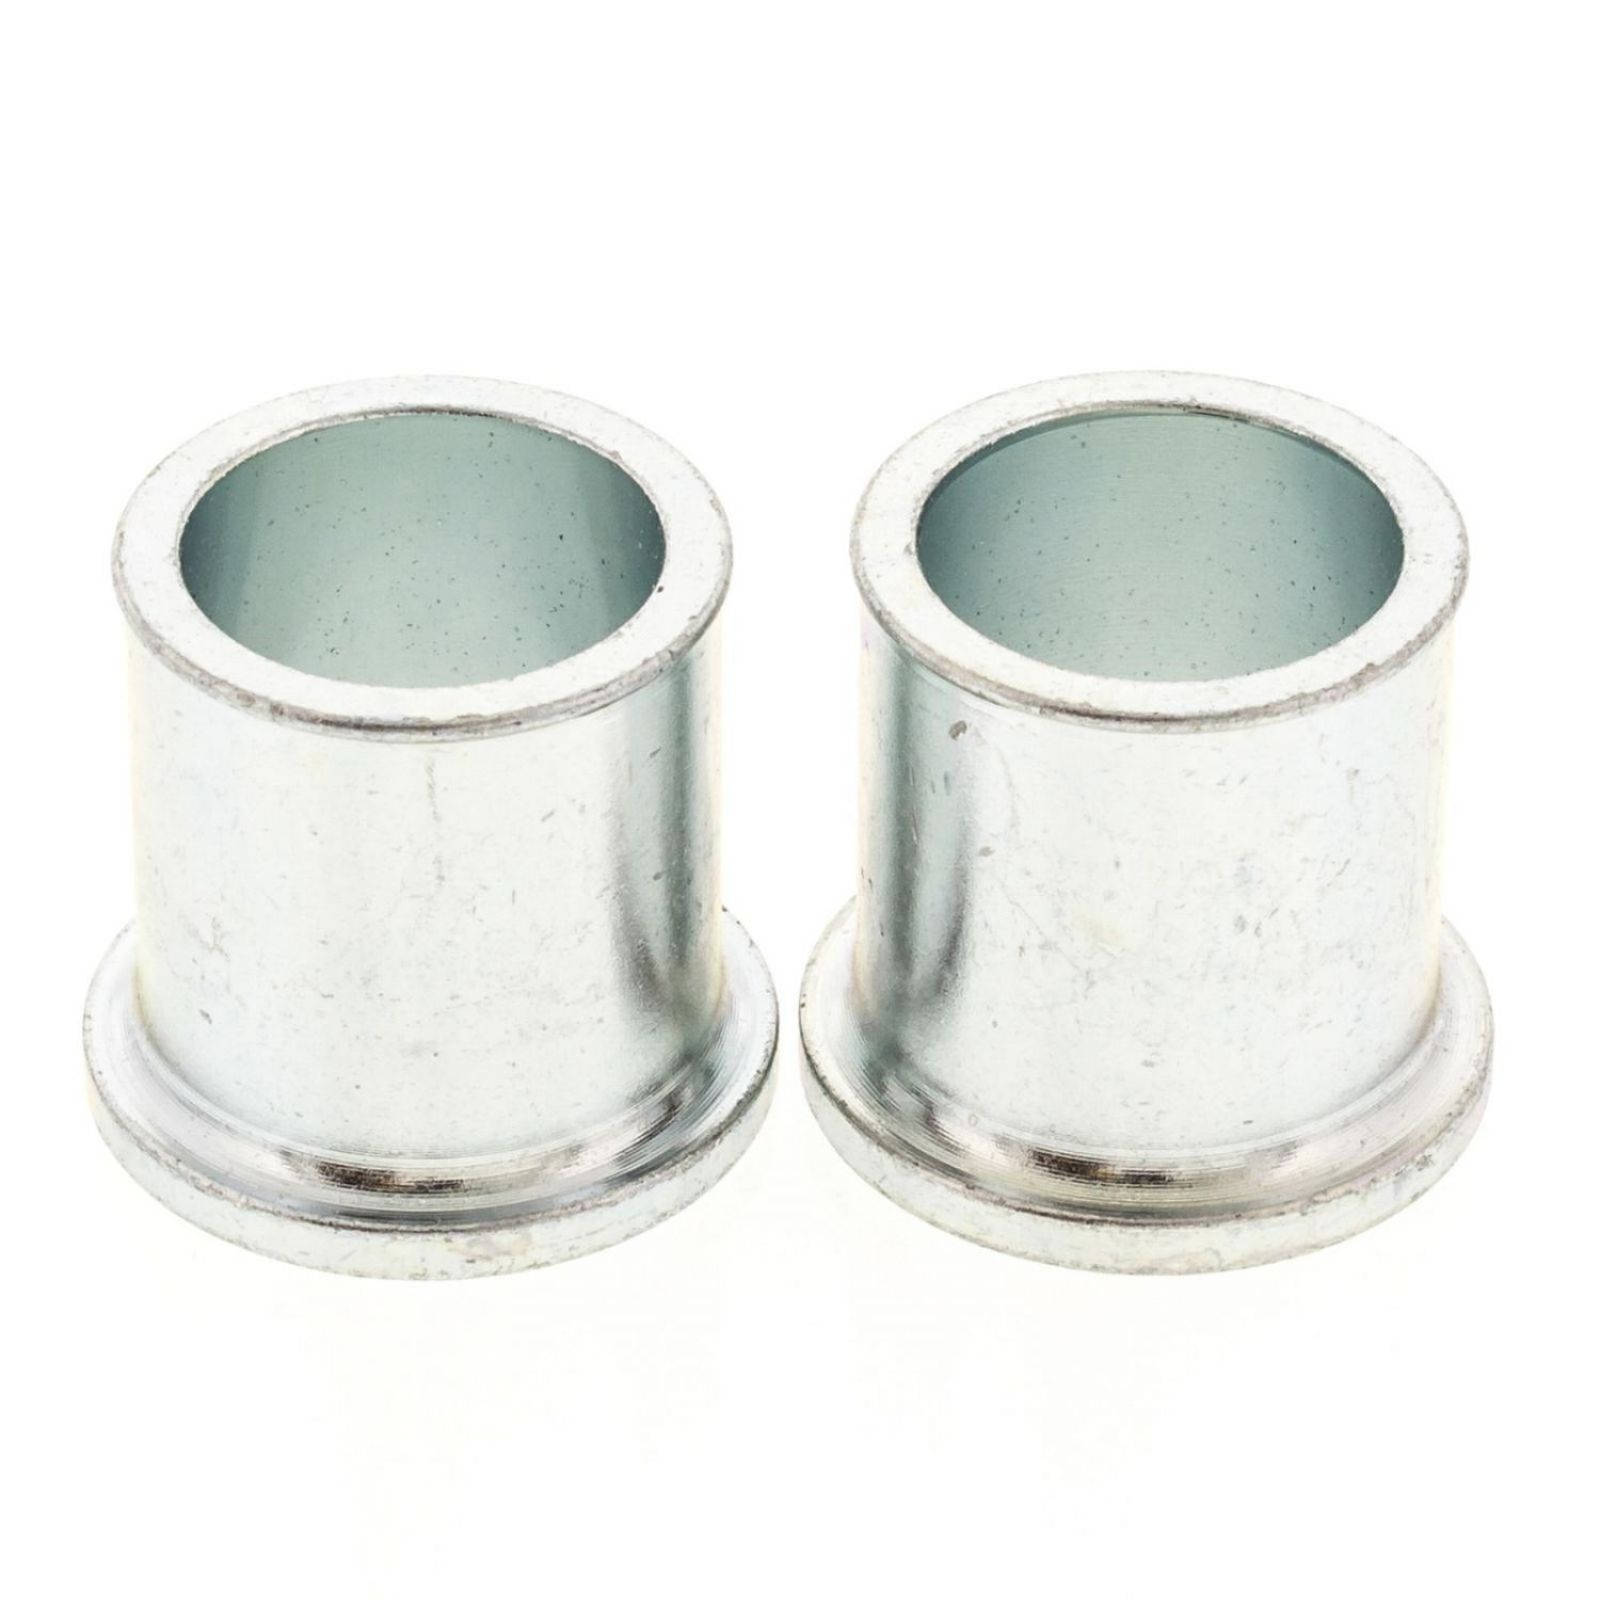 WRP Front Wheel Spacer Kits - WRP111031 image